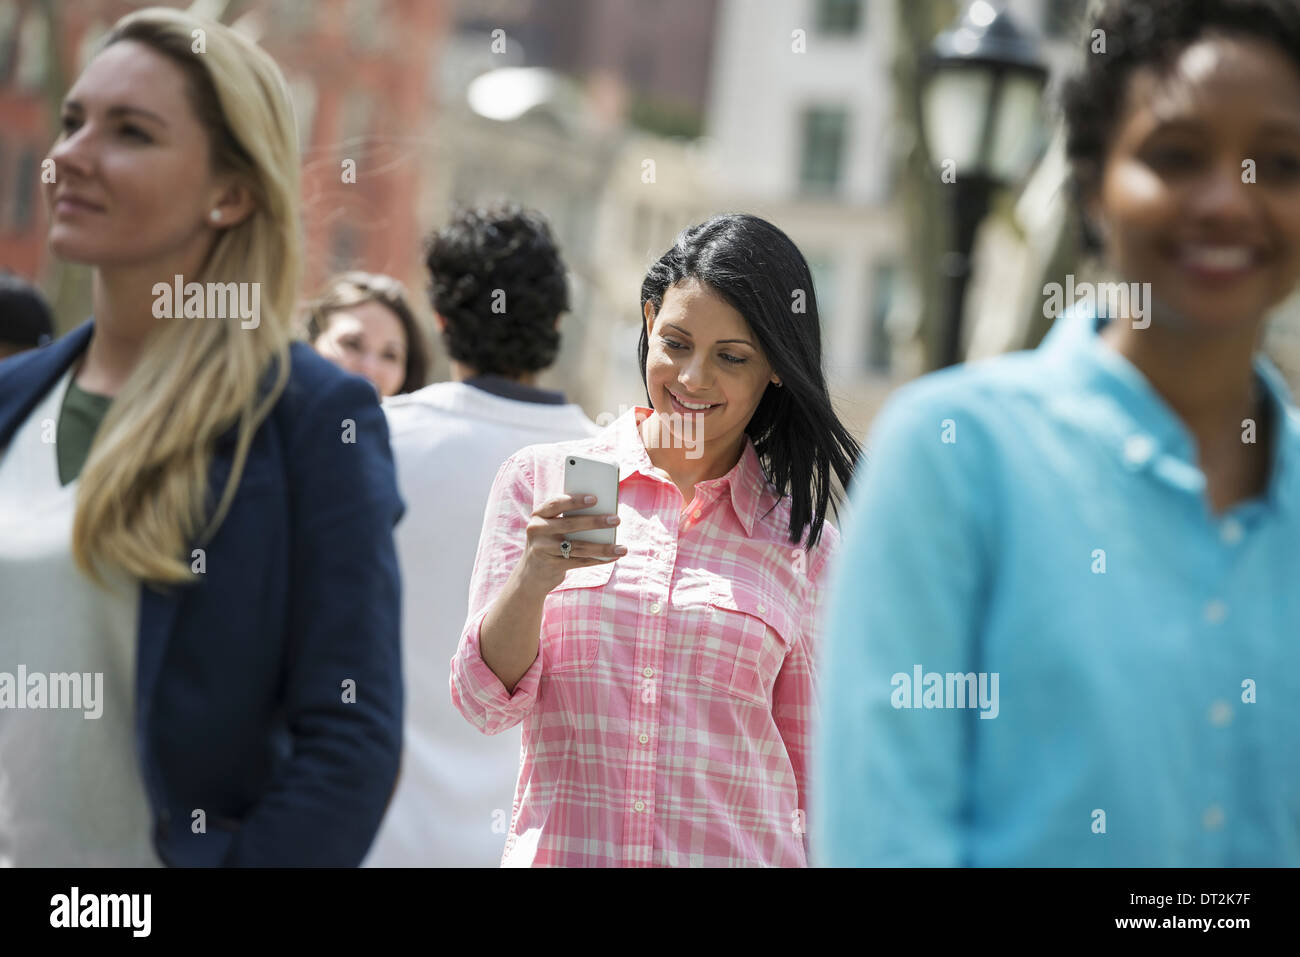 park Three women one checking her mobile phon - Stock Image